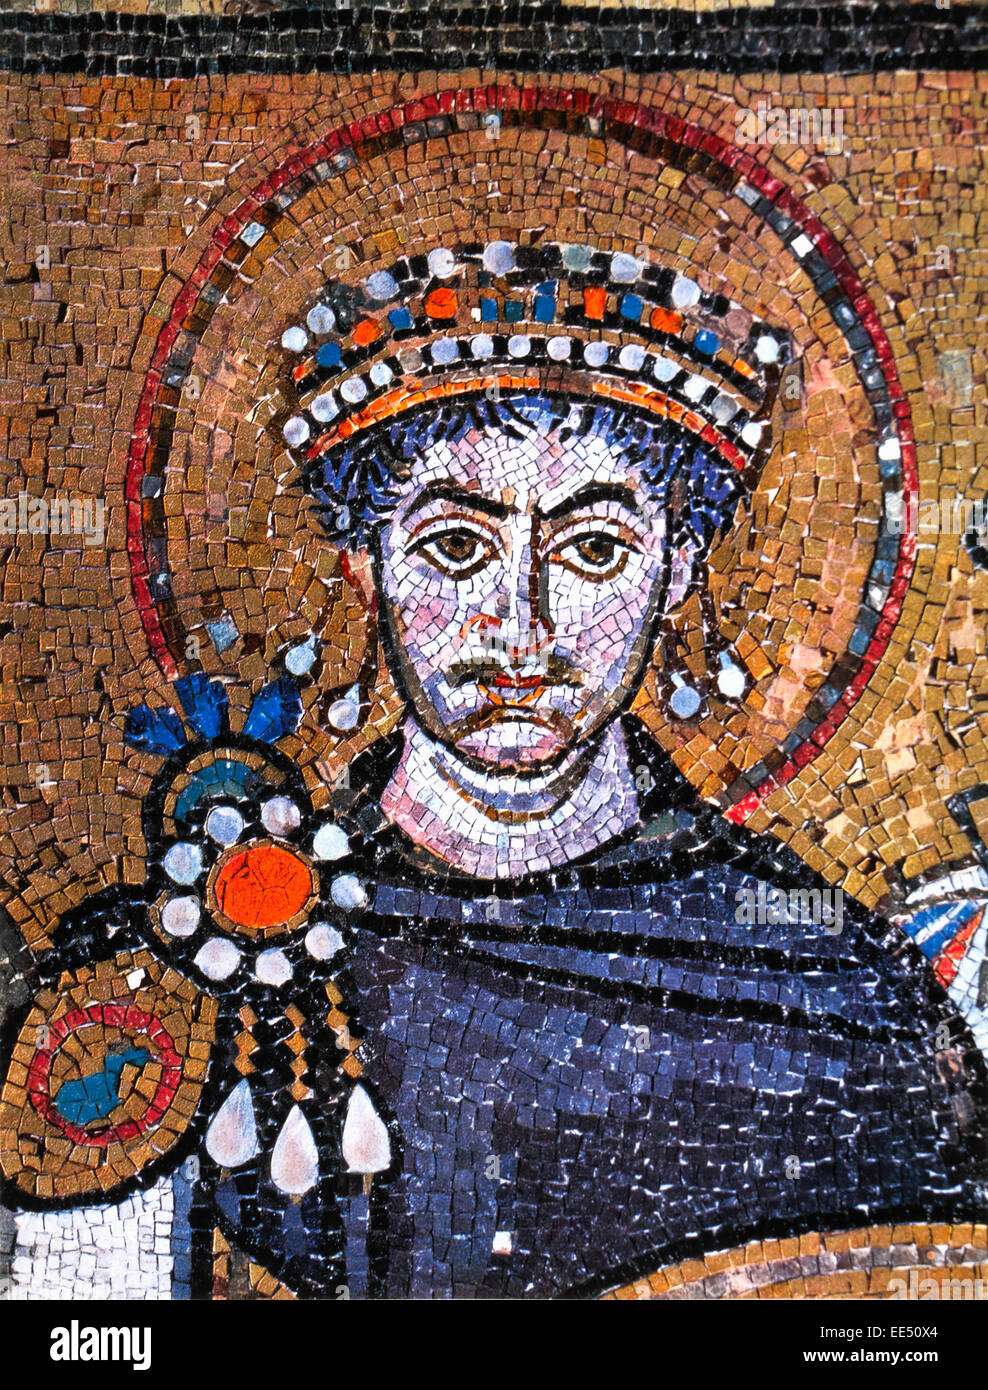 a biography of justinian i an emperor of the byzantine empire Constantine i was a roman emperor who ruled early in the 4th century he was the first christian emperor and saw the empire begin to become a christian state constantine i was born circa 280 in.